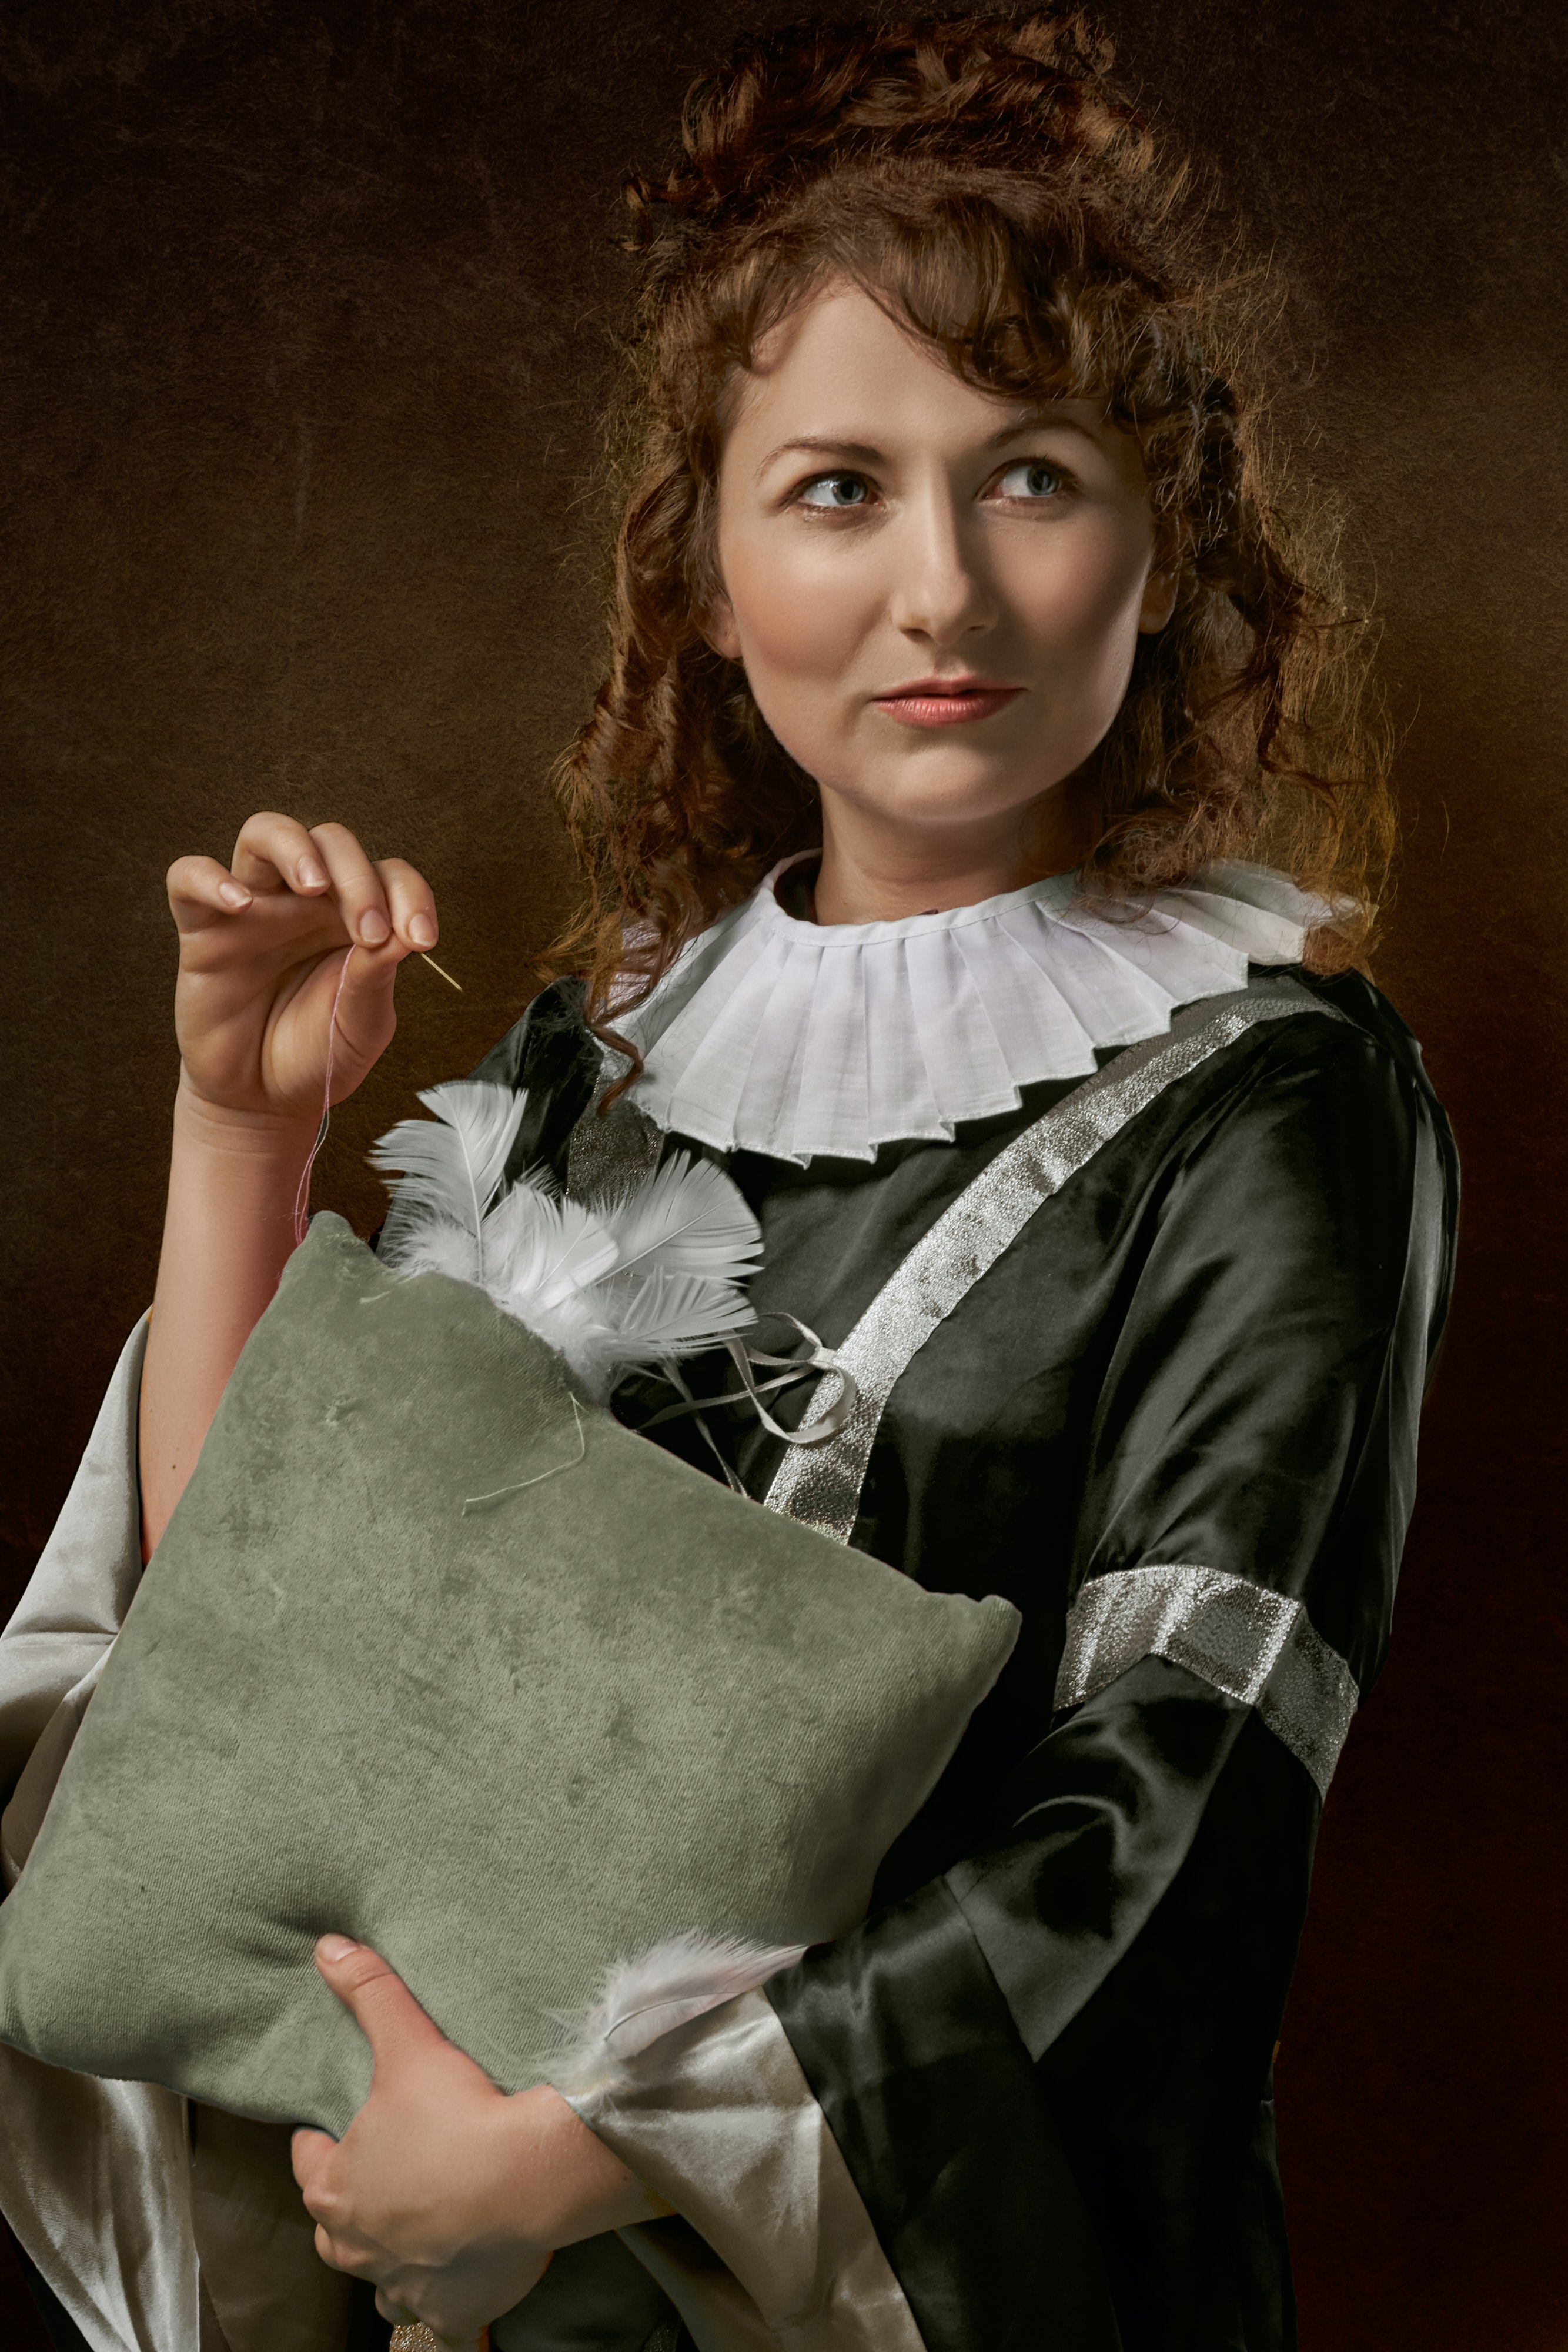 woman looking her left side holding throw pillow and about to sew